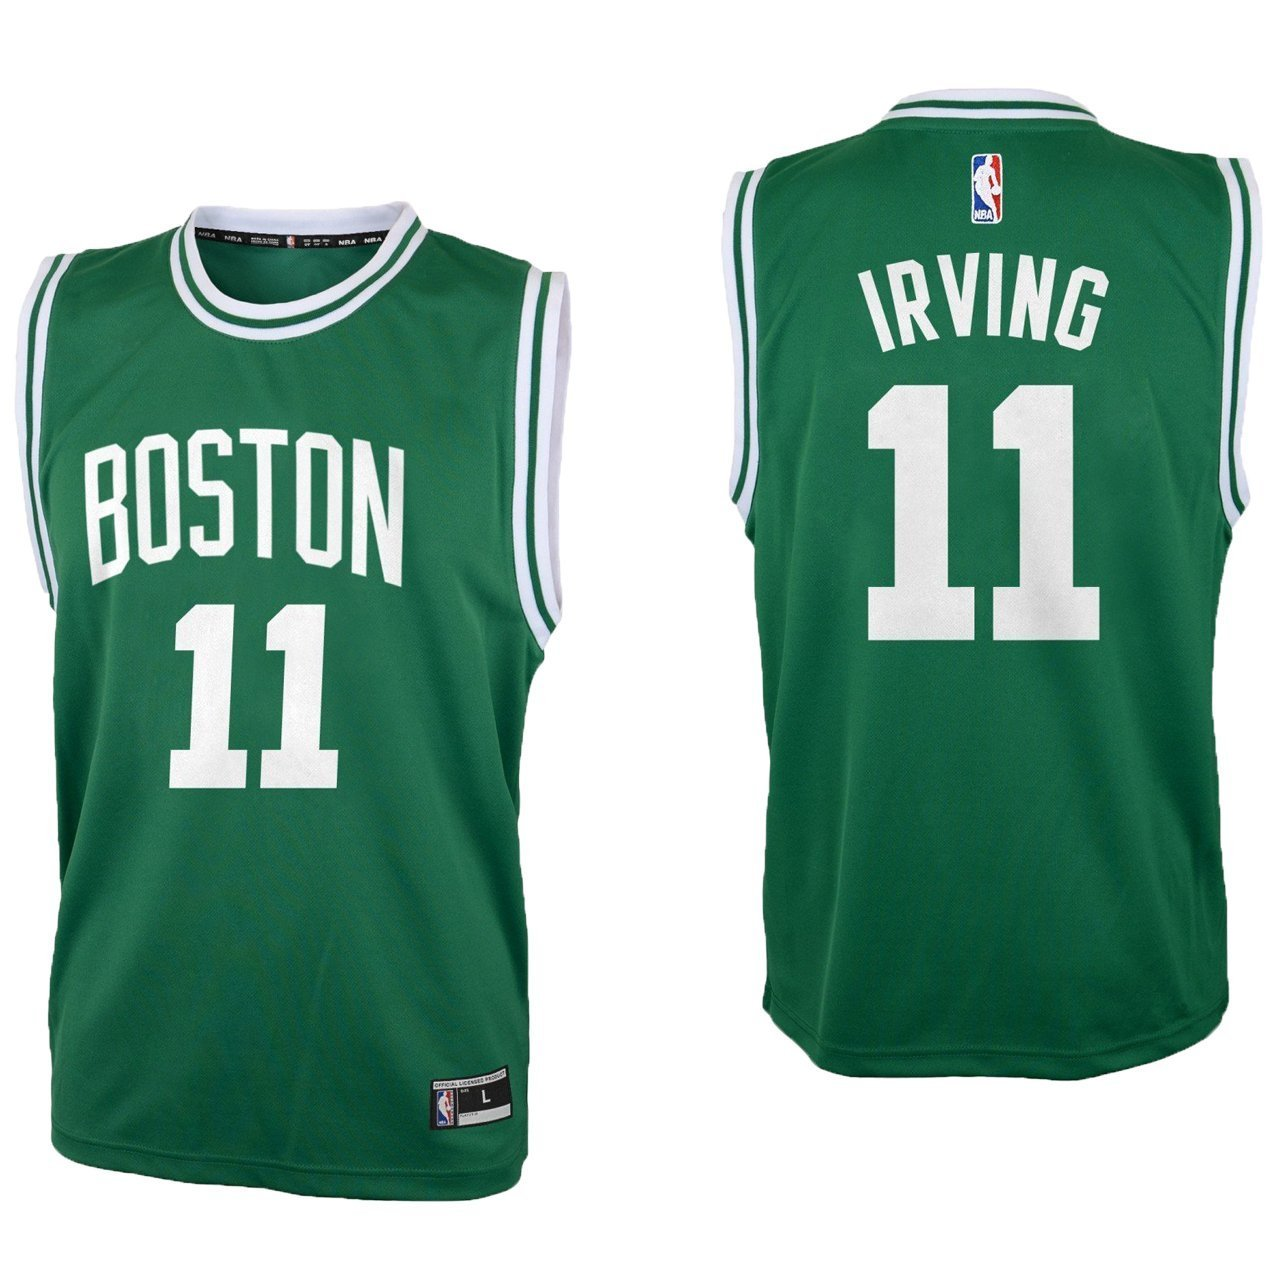 the latest b7c91 c9f64 Outerstuff Kyrie Irving Boston Celtics #11 Green Youth Road Replica Jersey